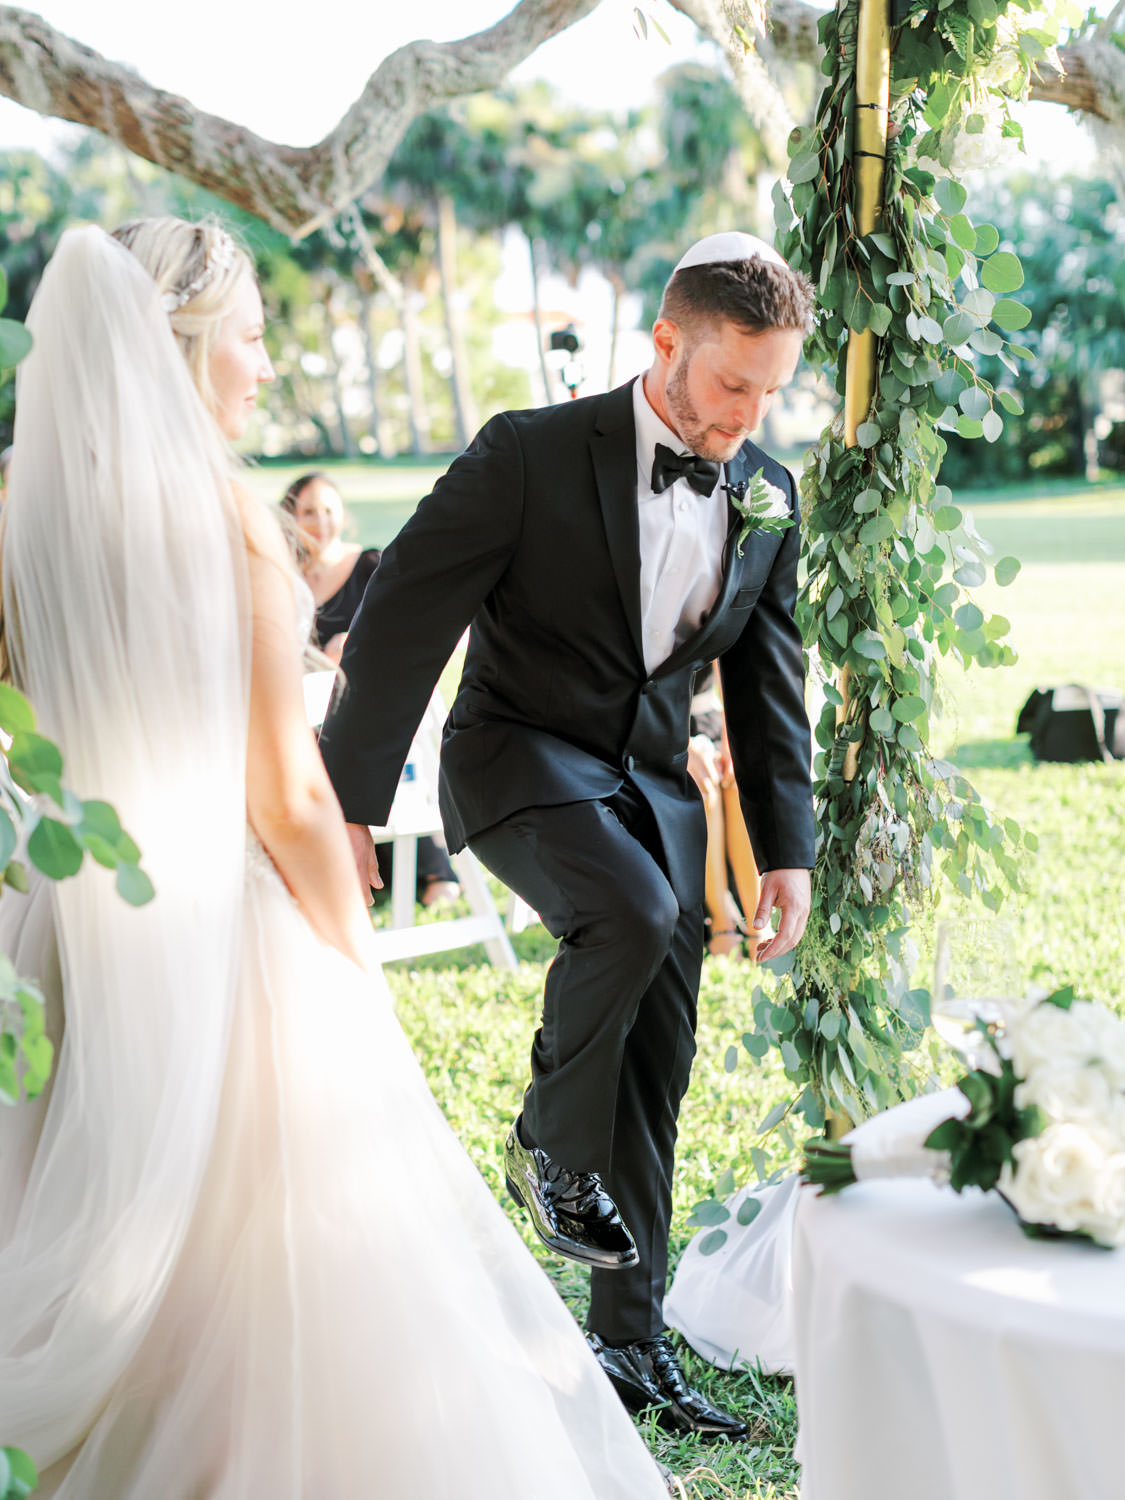 Groom breaking the glass. Chuppah covered in silver dollar eucalyptus and white flowers under a tree covered in spanish moss. Film photography at Jekyll Island Club Resort Wedding by Cavin Elizabeth Photography